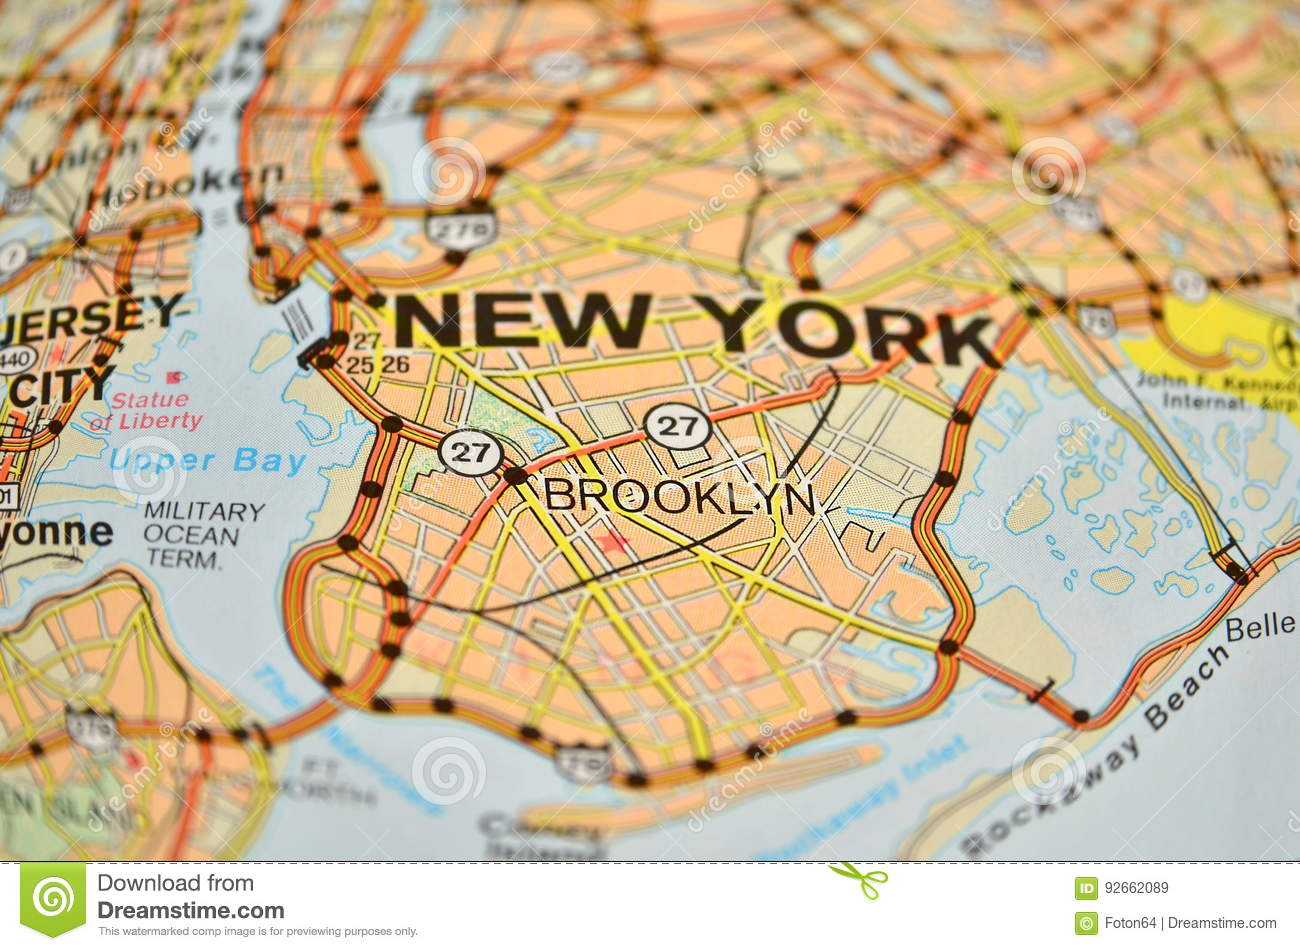 New York Brooklyn Map Stock Image Image Of Focus America 92662089